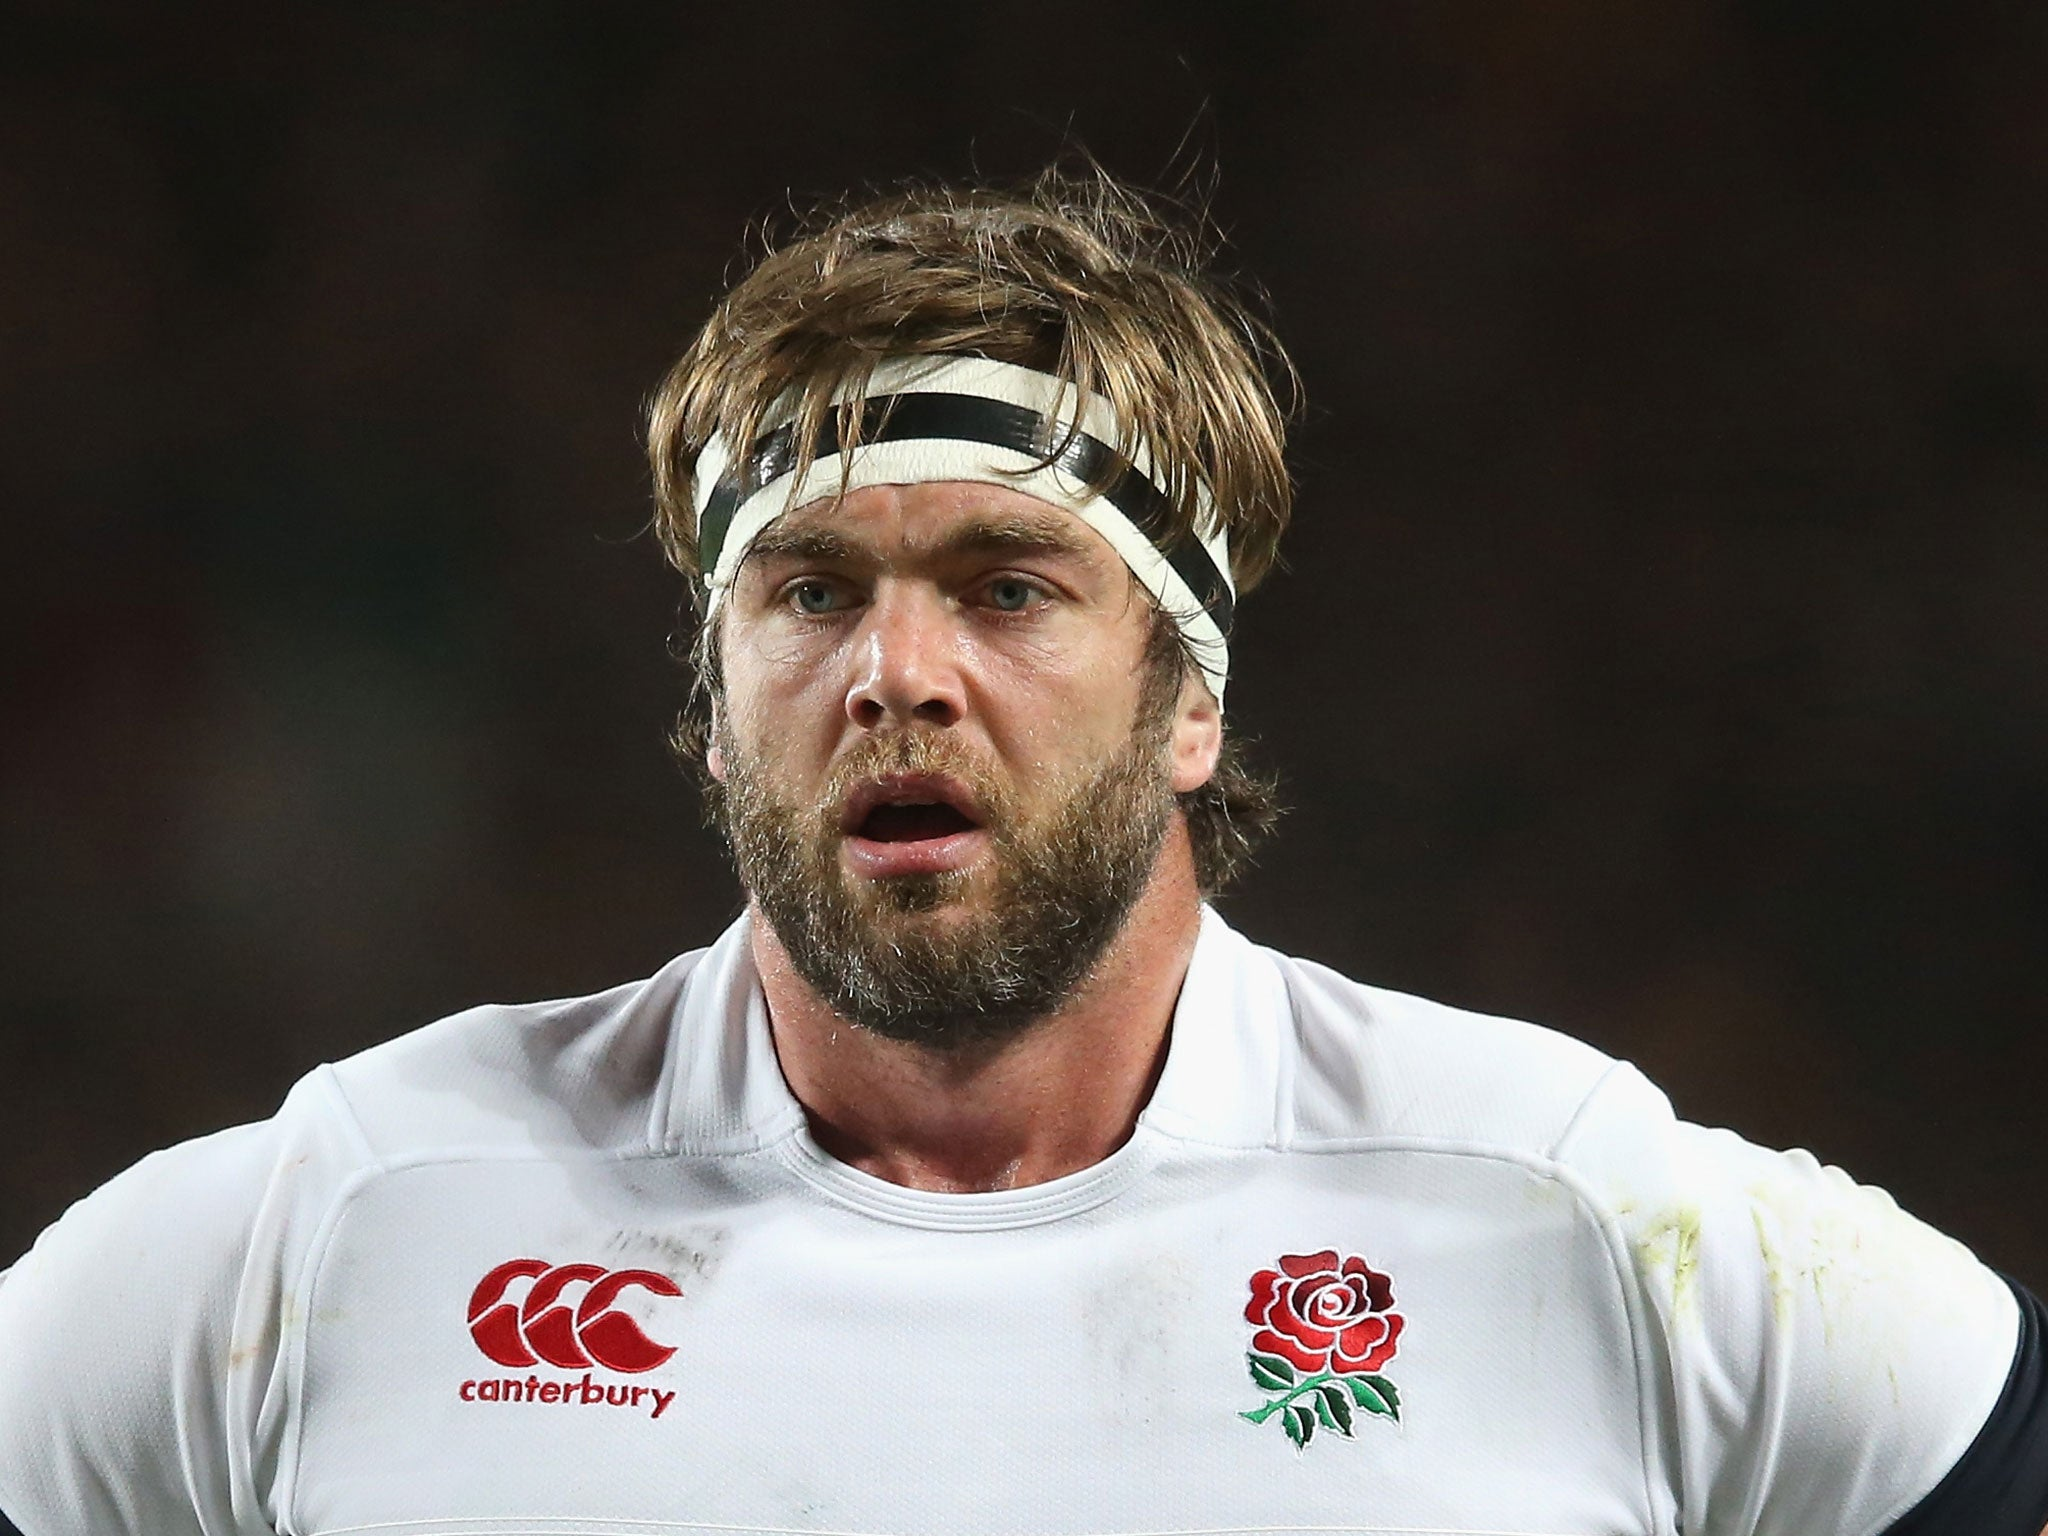 Geoff Parling Six Nations 2015 England vs Italy Brad Barritt and Geoff